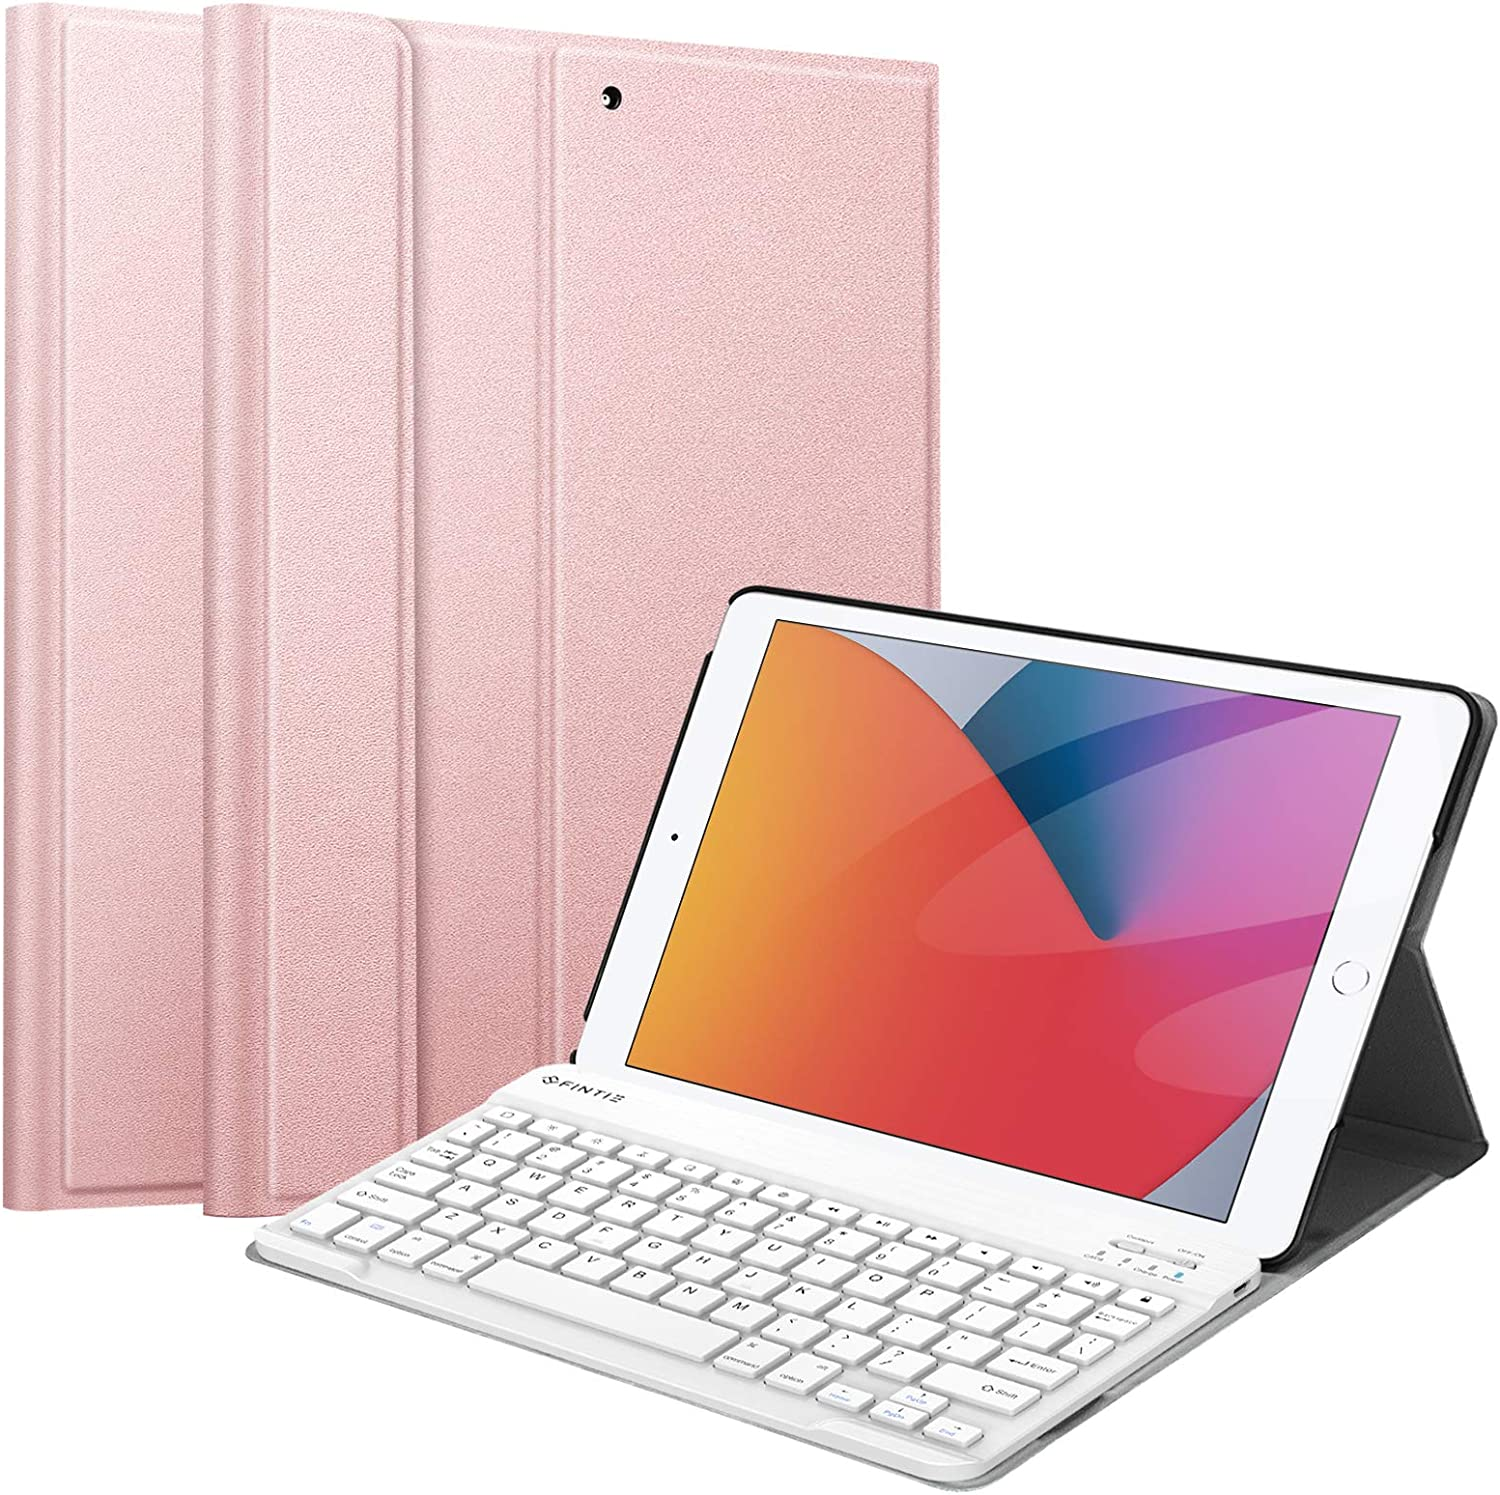 Fintie Keyboard Case for New iPad 8th Gen (2020) / 7th Generation (2019) 10.2 Inch, SlimShell Stand Protective Cover w/Magnetically Detachable Wireless Bluetooth Keyboard, Rose Gold